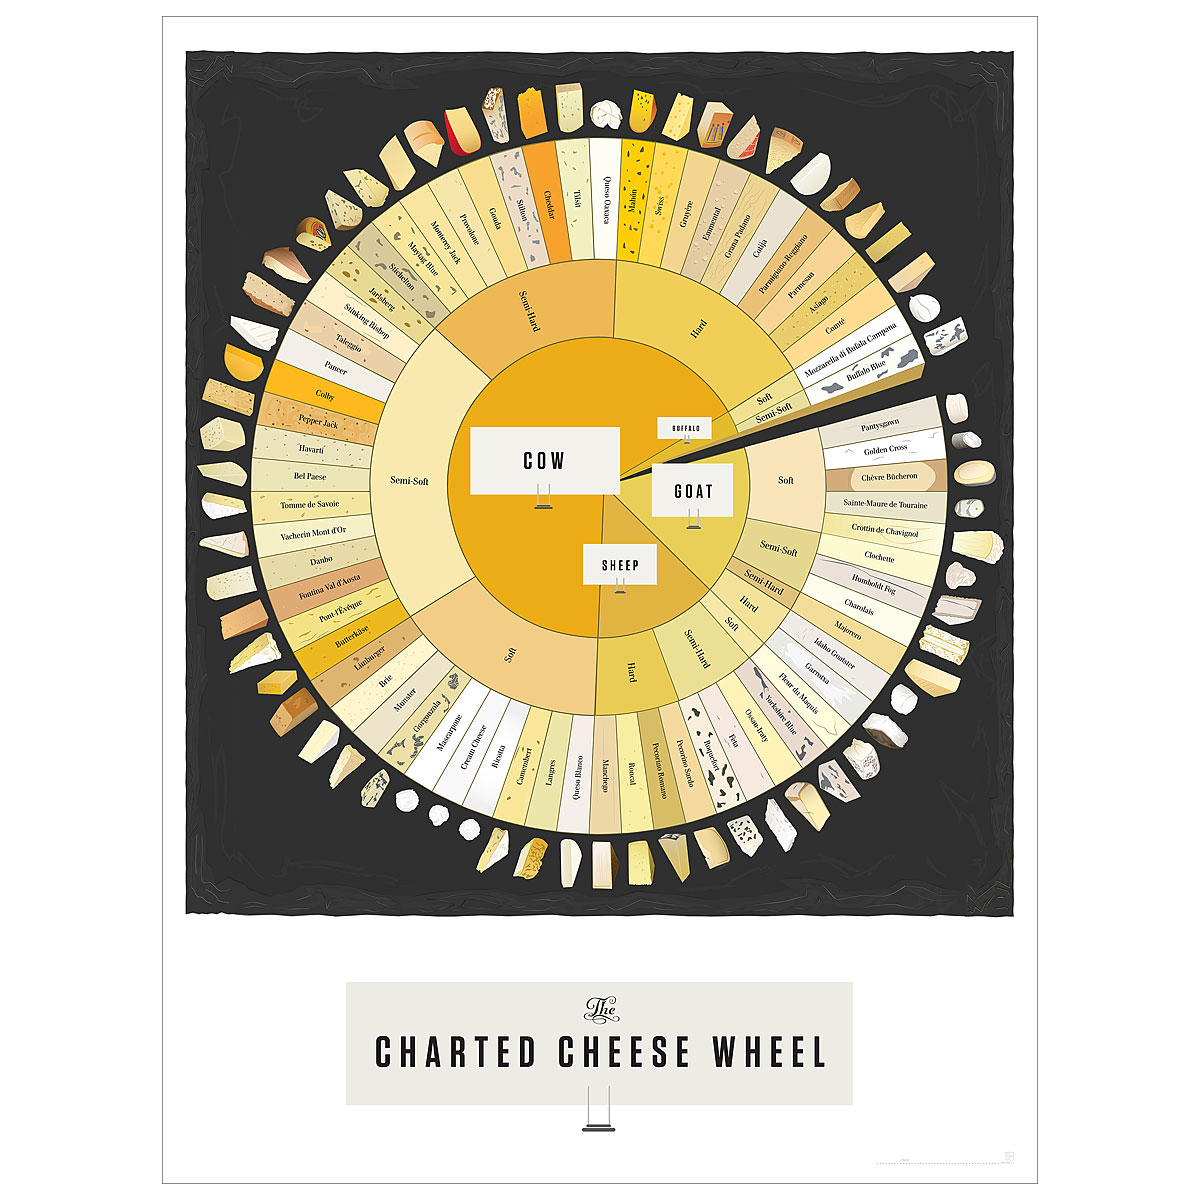 Charted Cheese Wheel